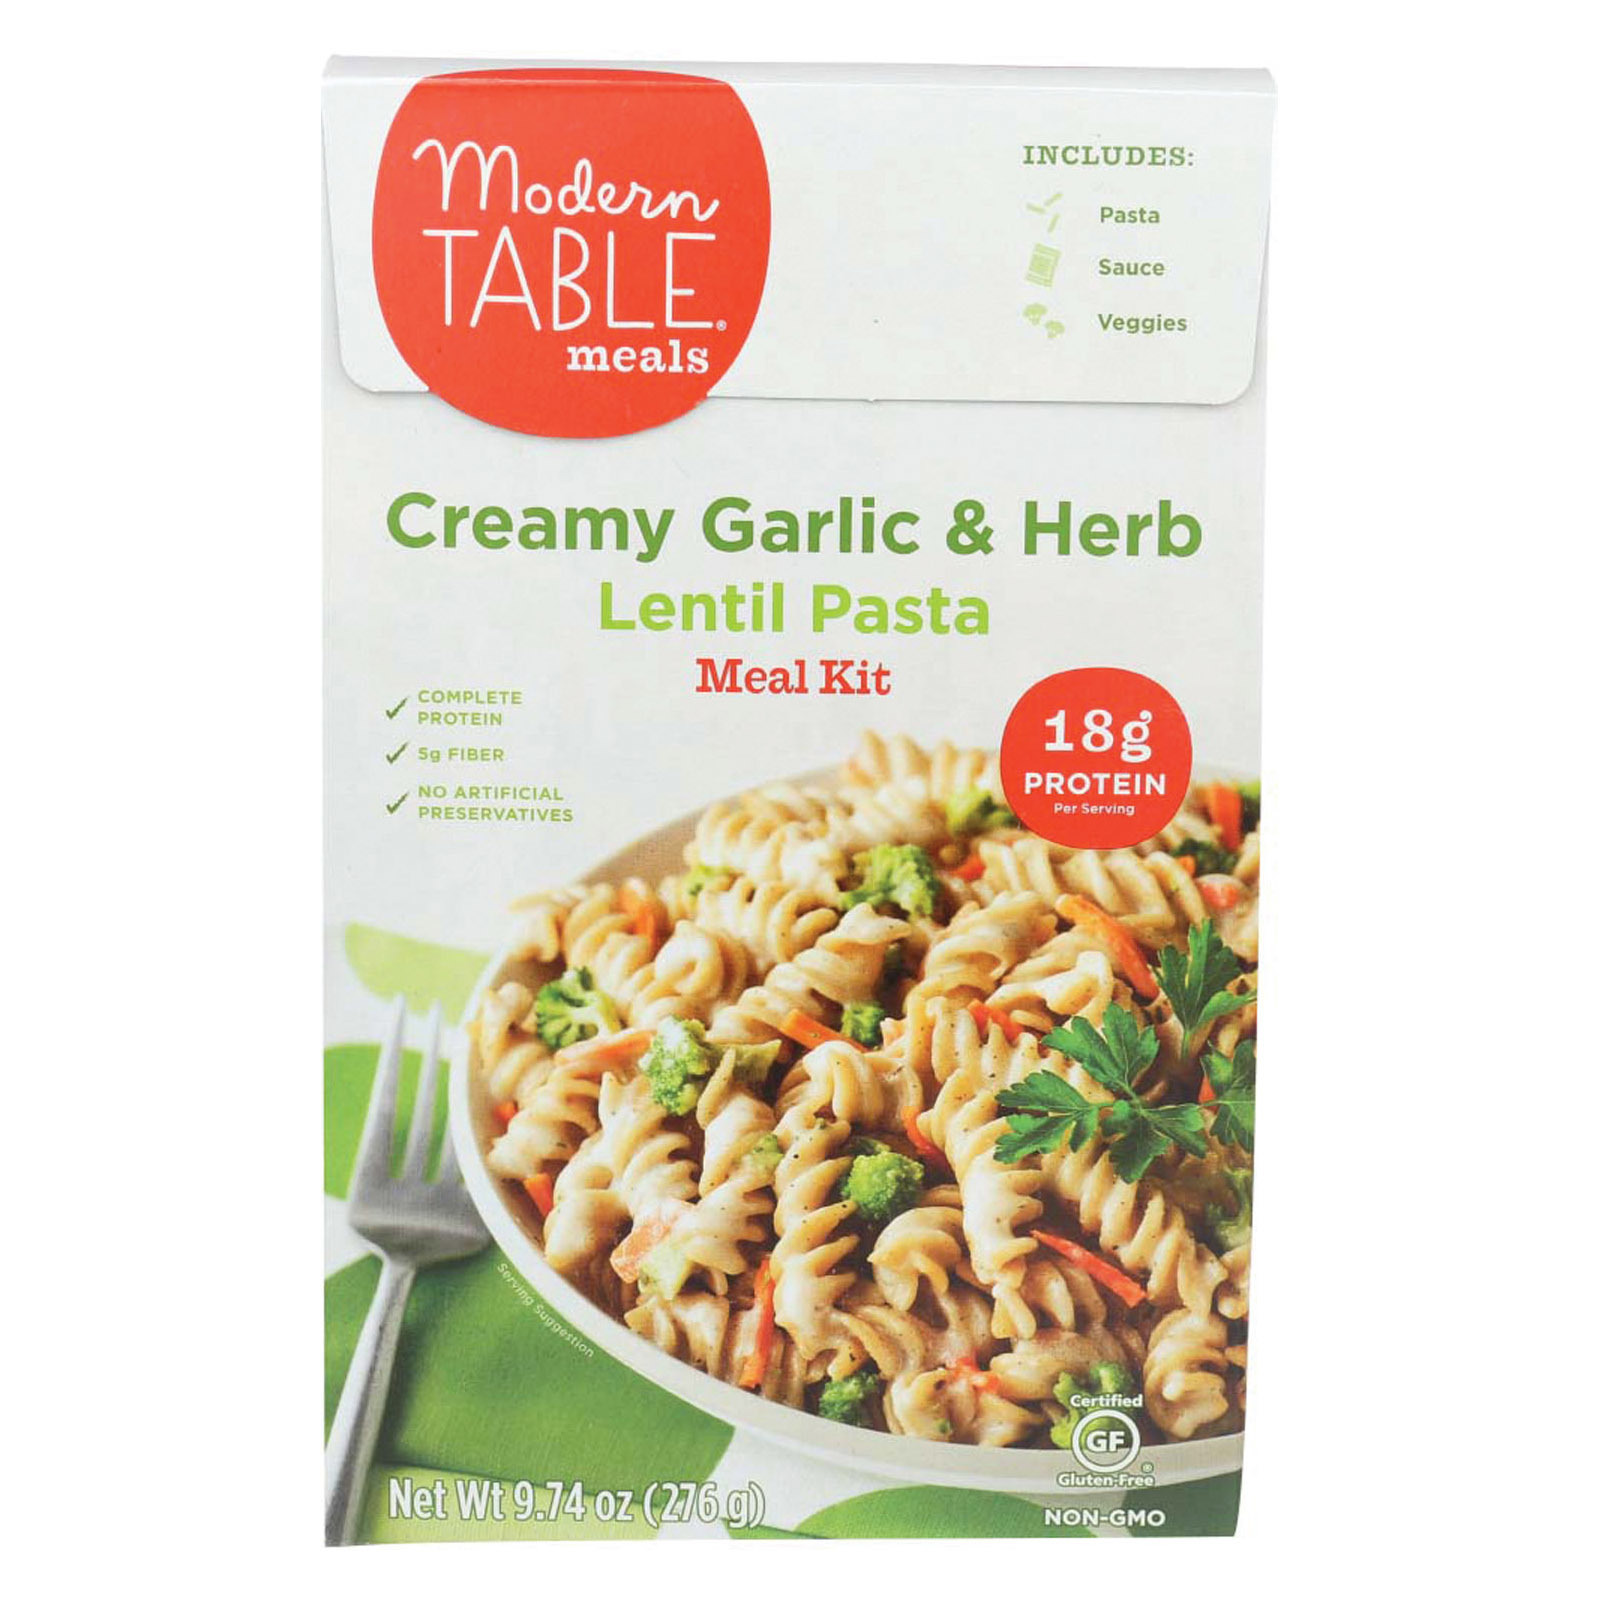 Modern Table Lentil Pasta - Meal Kit - Creamy Garlic - Case of 6 - 9.74 oz